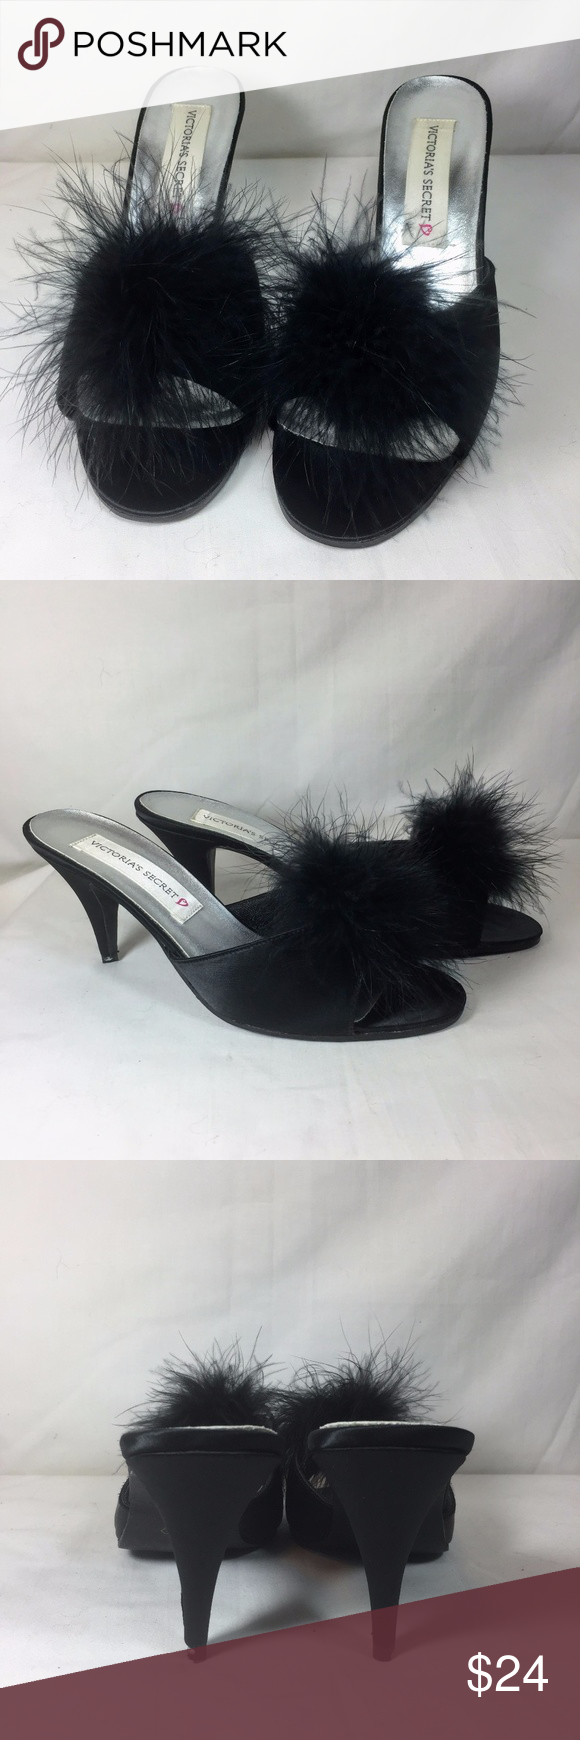 bb445652ddb55 Victoria's Secret Marabou Puff High Heel Slippers Victoria's Secret ...